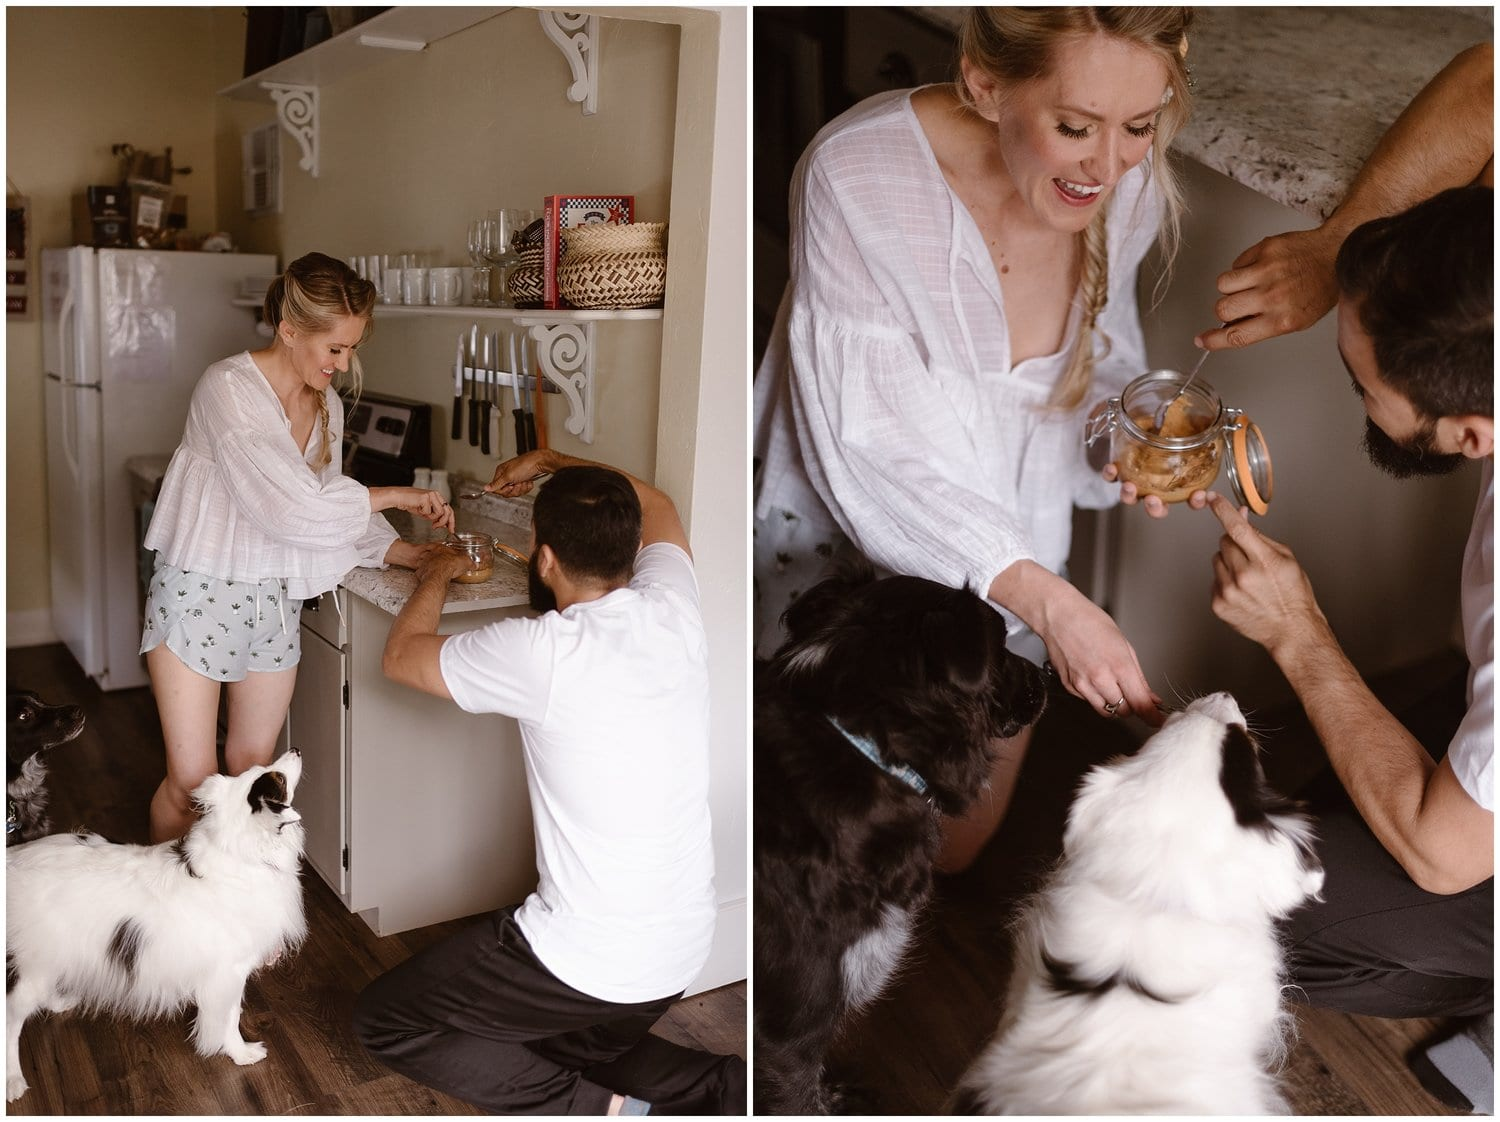 Two individual photos of a couple feeding peanut butter from a mason jar to their furry black and white dog.